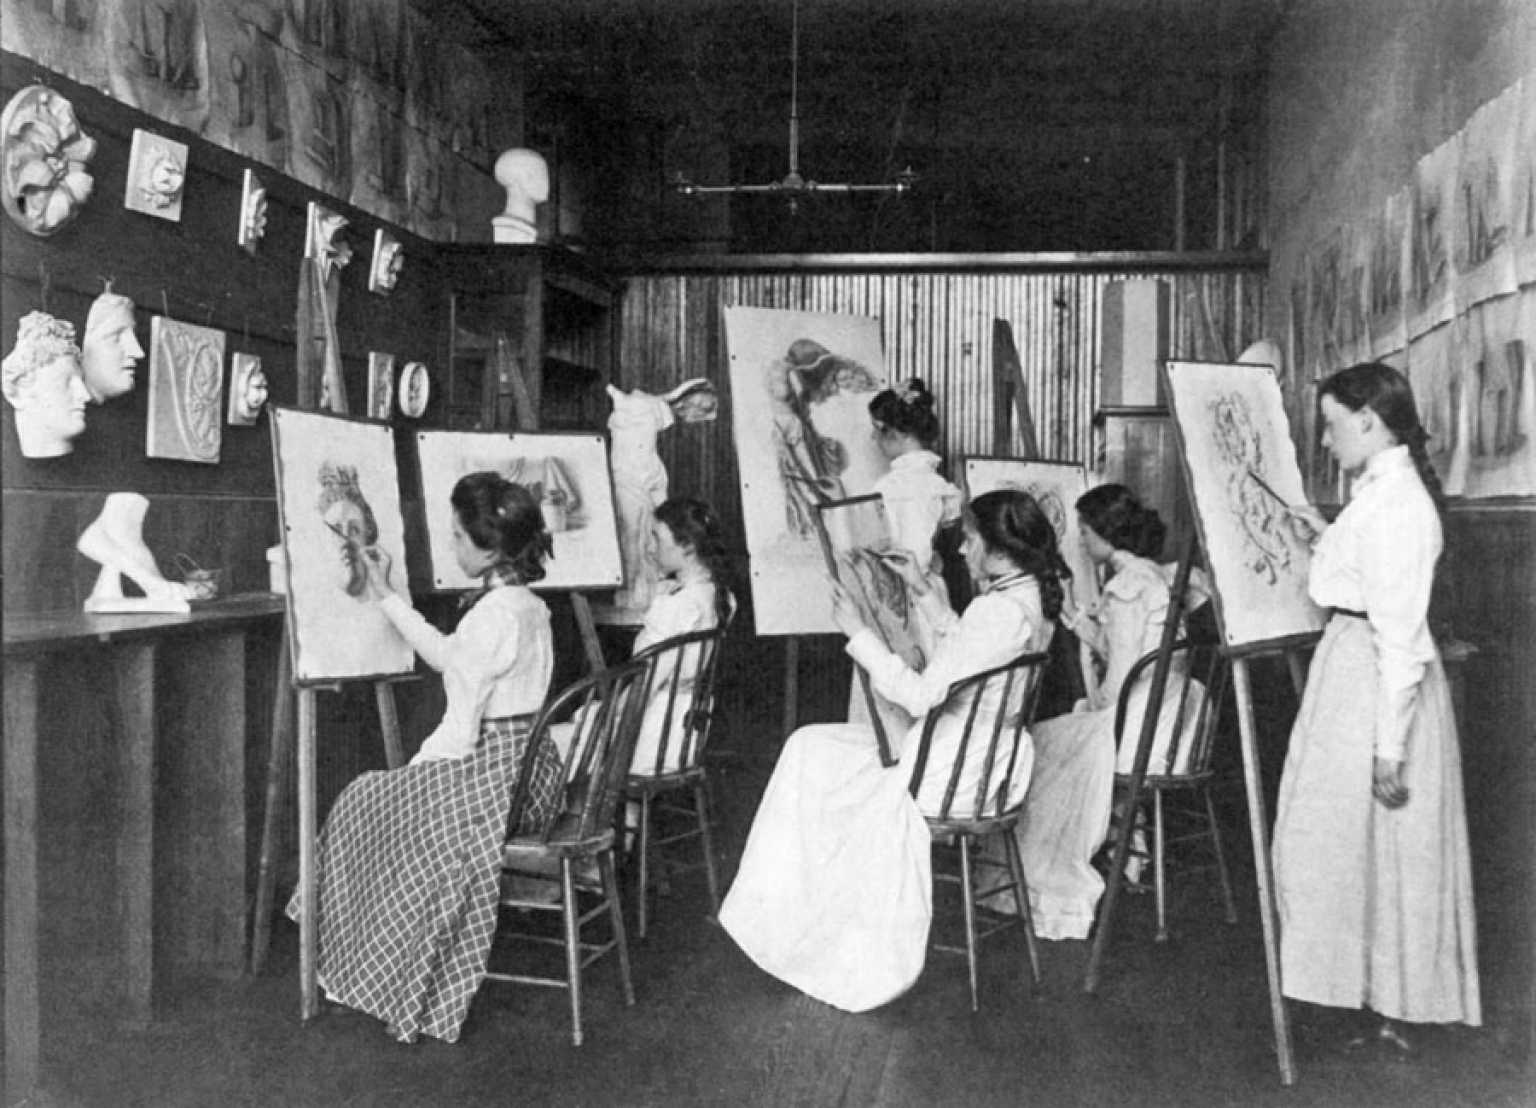 Frances Benjamin Johnston - 6 Girls in Art Class, Drawing at Easels, Eastern High School, Washington D.C 1899